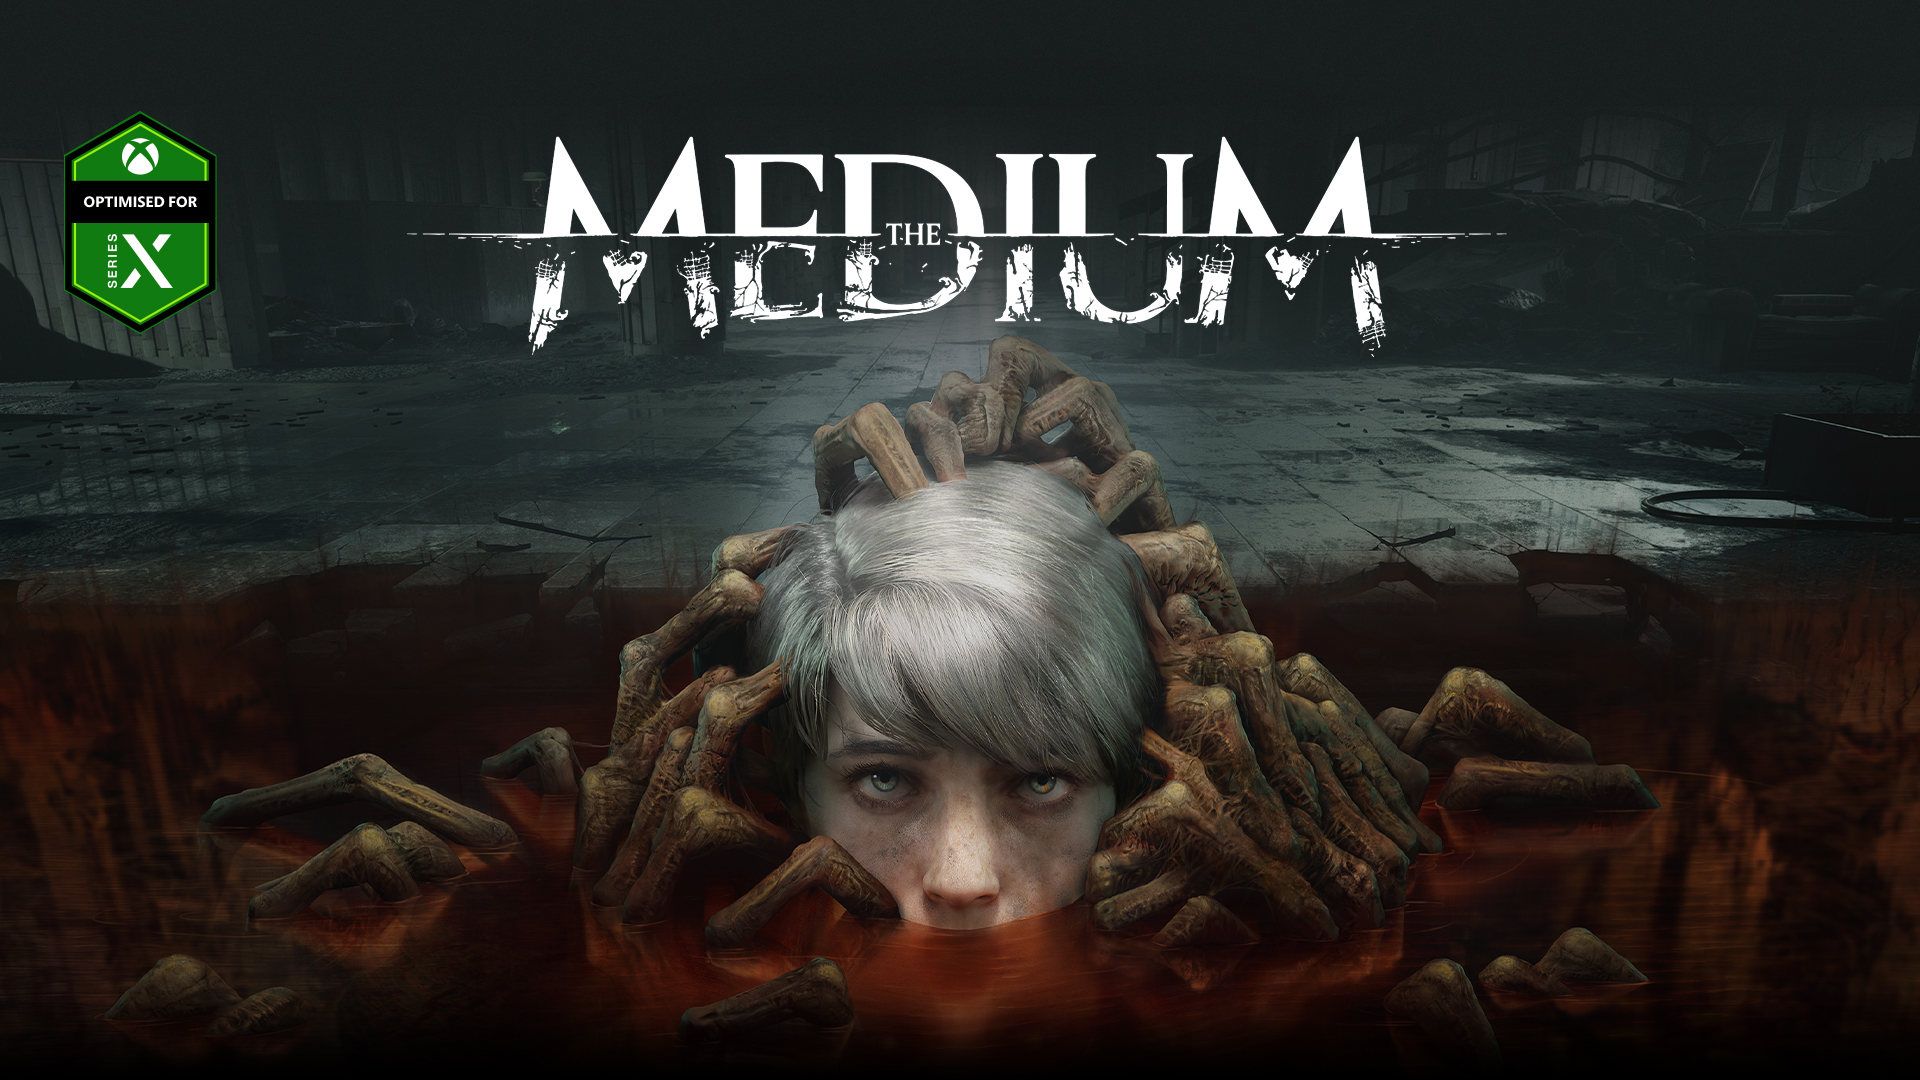 The Medium, Optimised for Series X, A child's head rises from a puddle filled with undead hands.